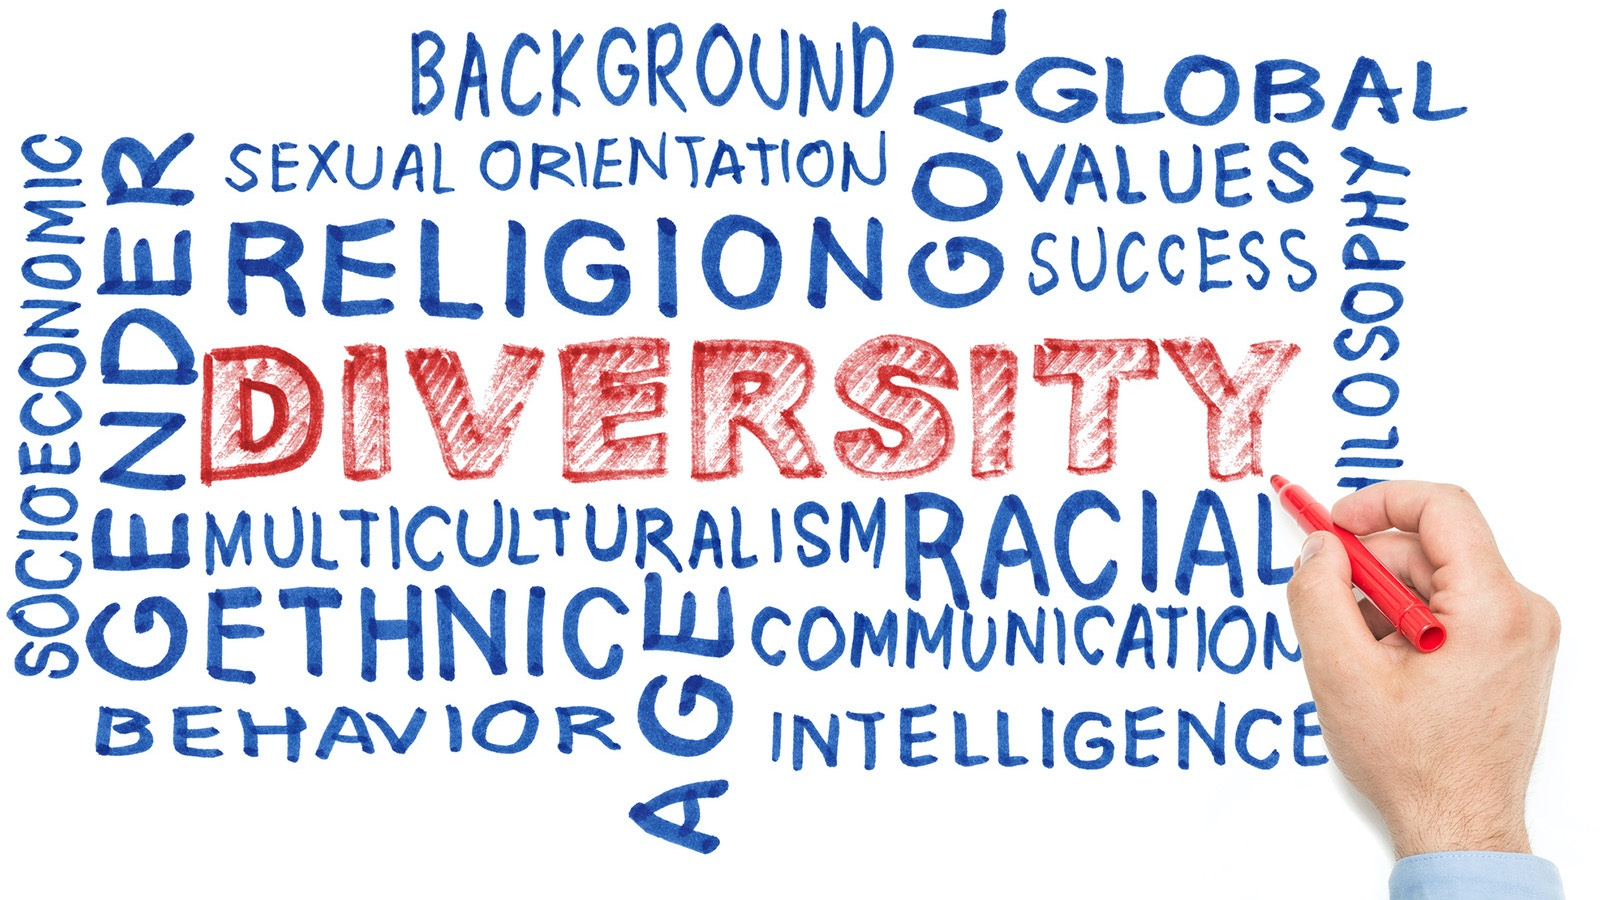 Intersectionality Theory for Diversity